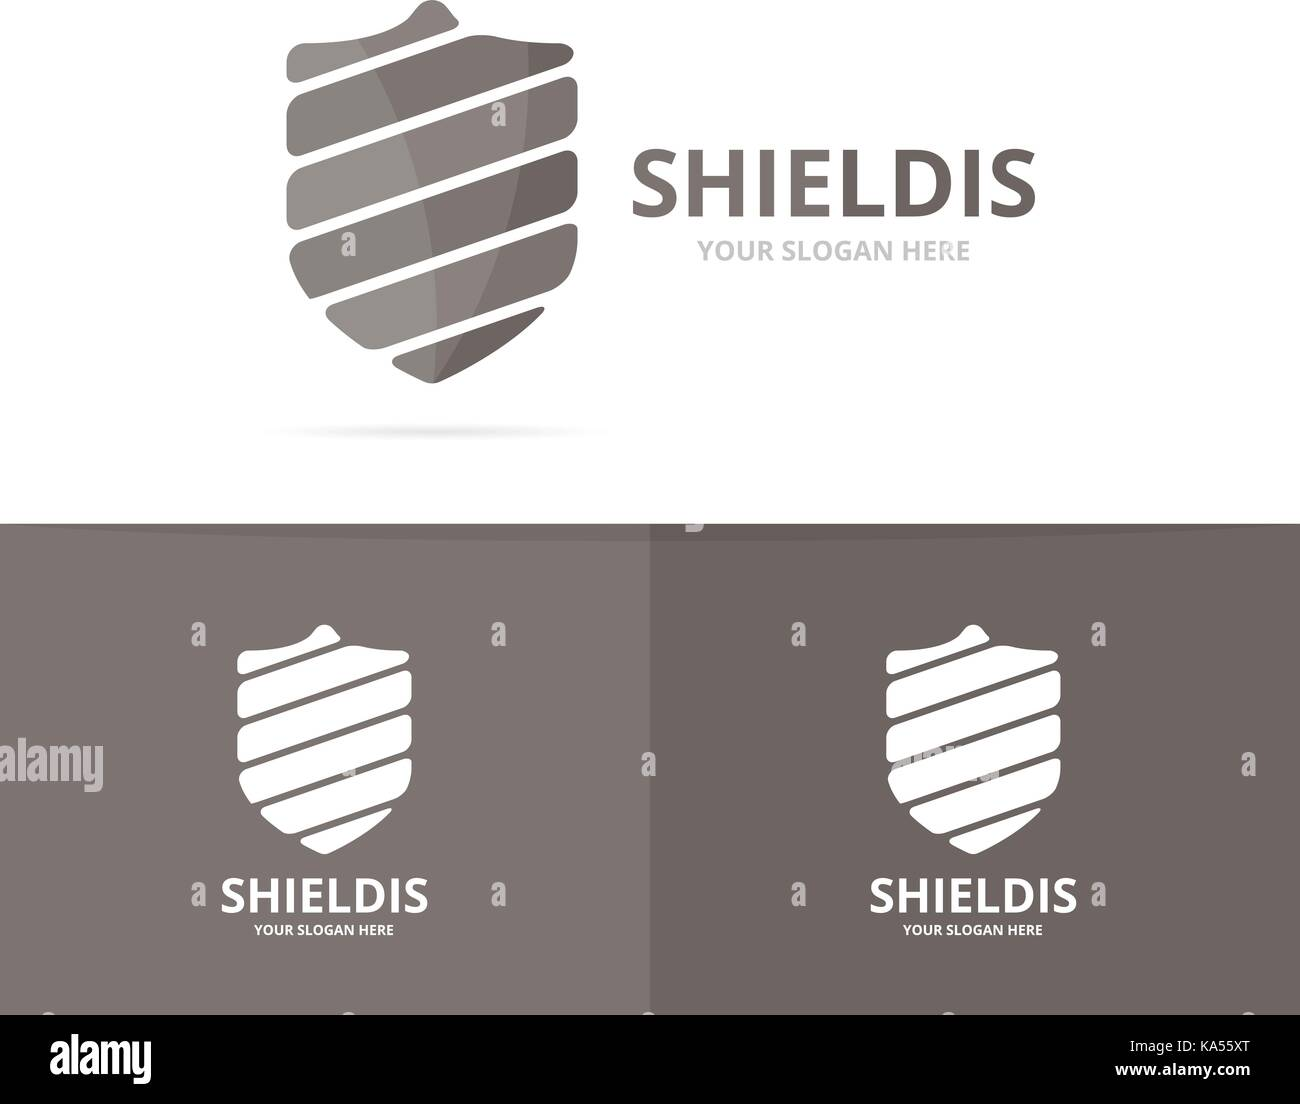 Unusual Graal Shield Template Contemporary - Examples Professional ...